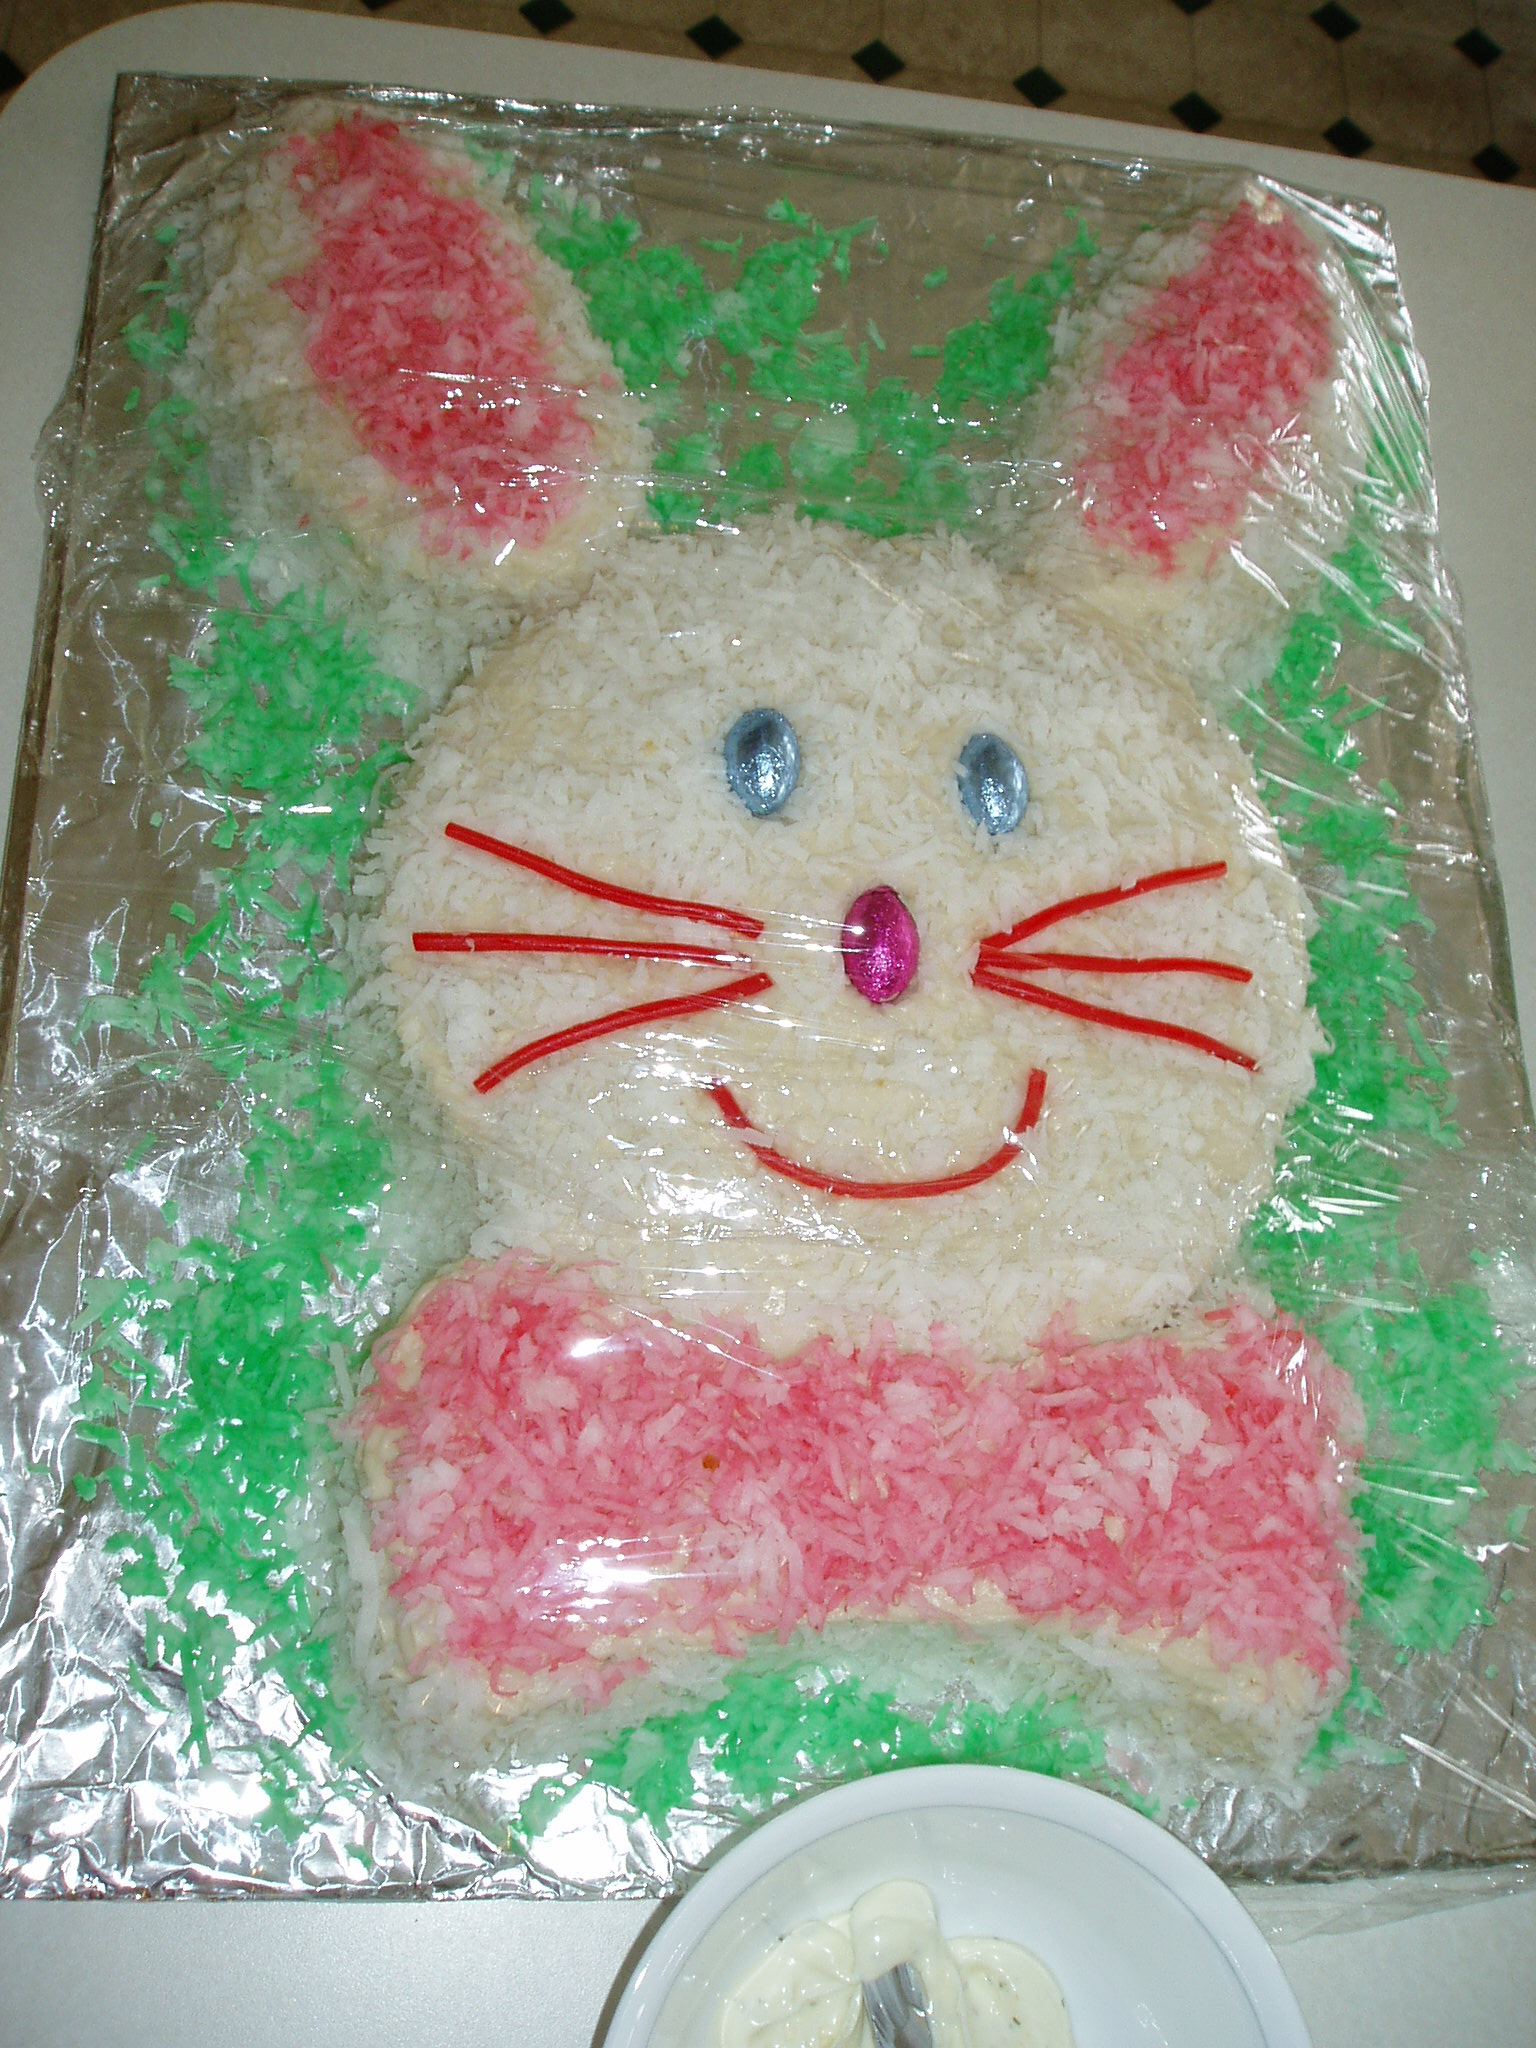 http://pragmaticcompendium.files.wordpress.com/2009/04/easter_bunny_cake3.jpg